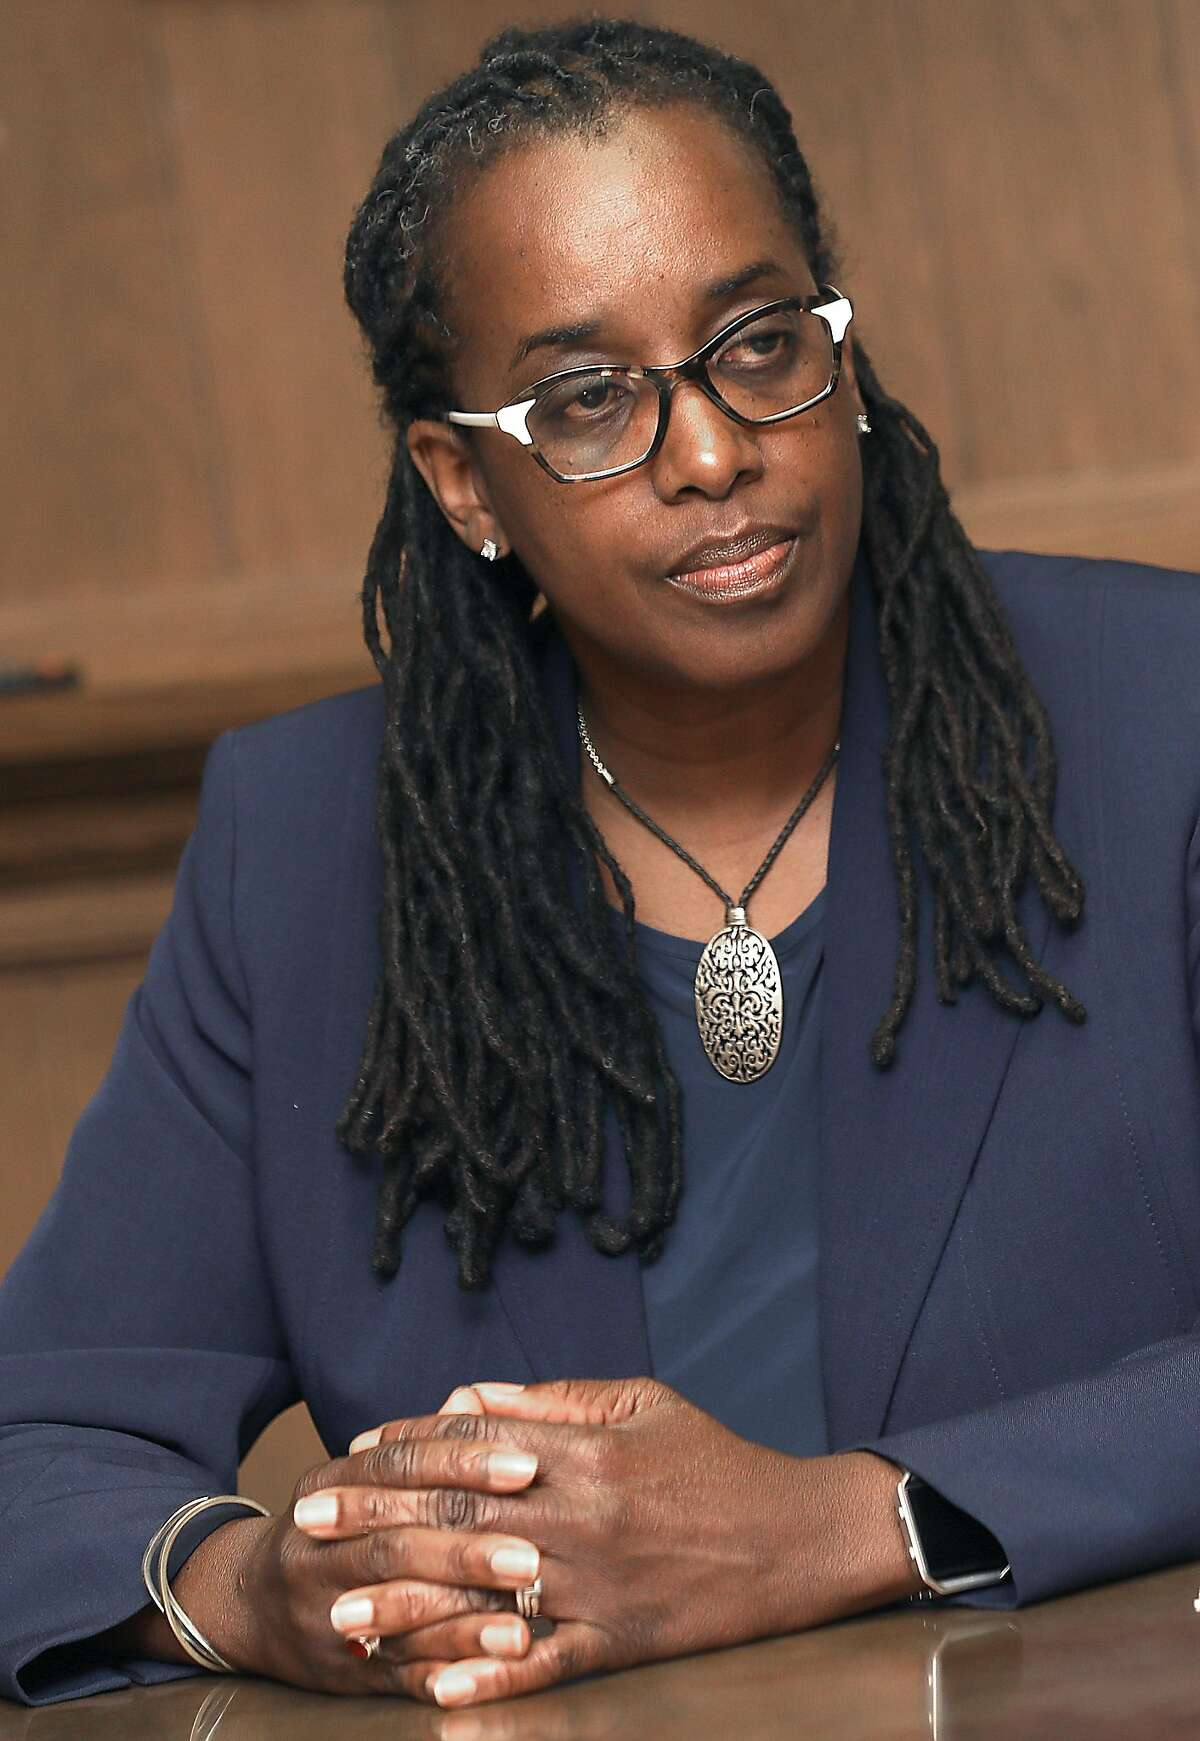 Jovanka Beckles, 55, is a youth mental health counselor and Richmond City Council member.